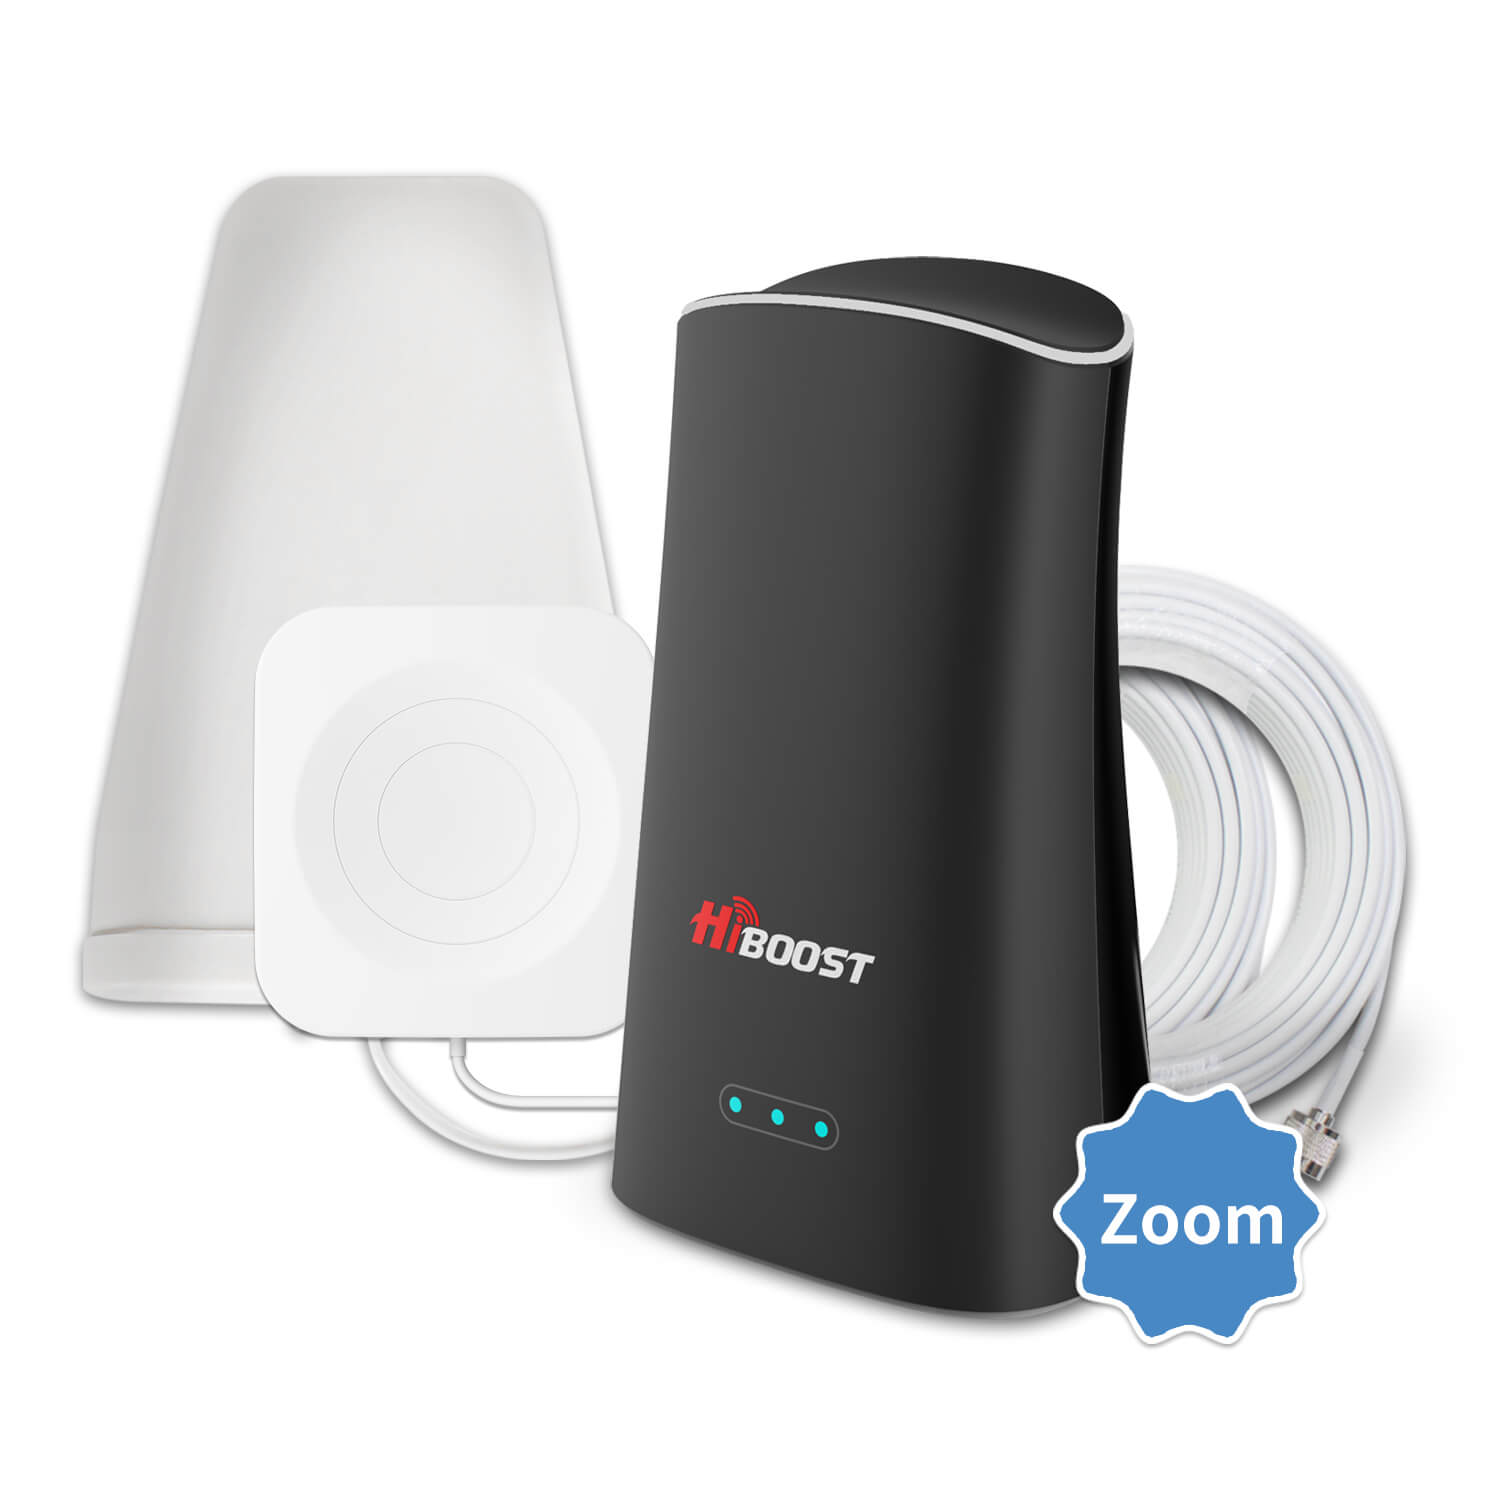 Zoom-Signal-Booster-1